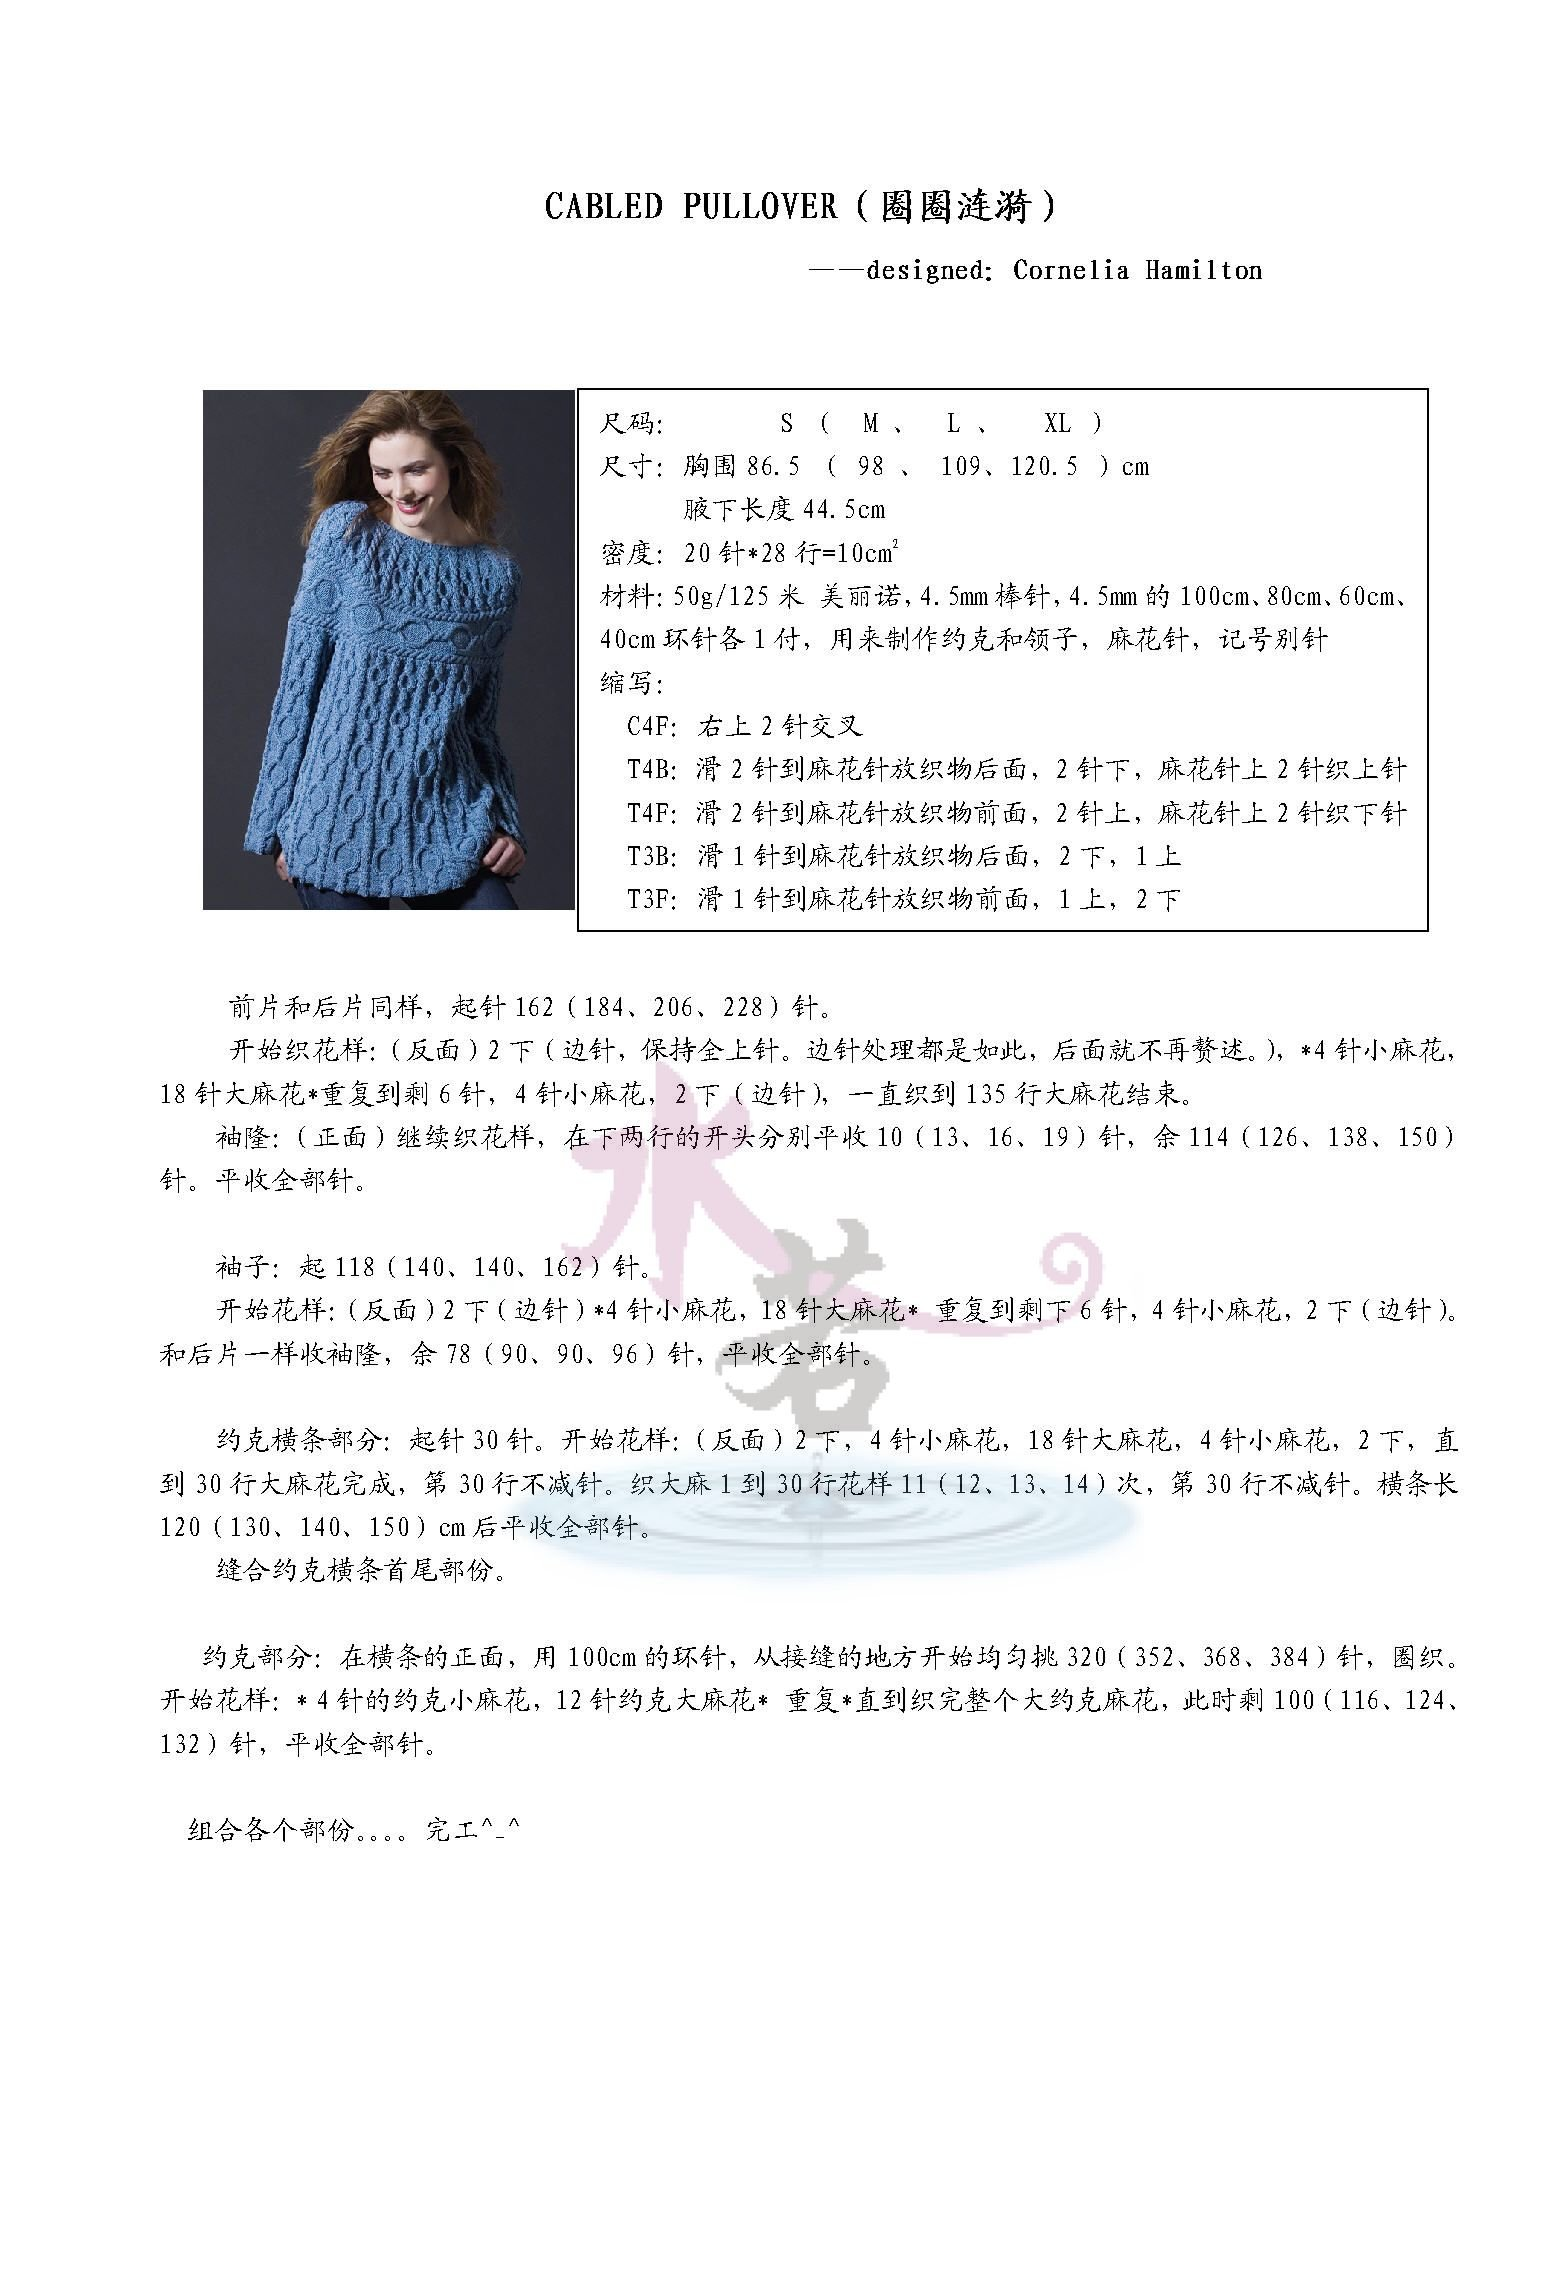 CABLED PULLOVER(圈圈涟漪).jpg